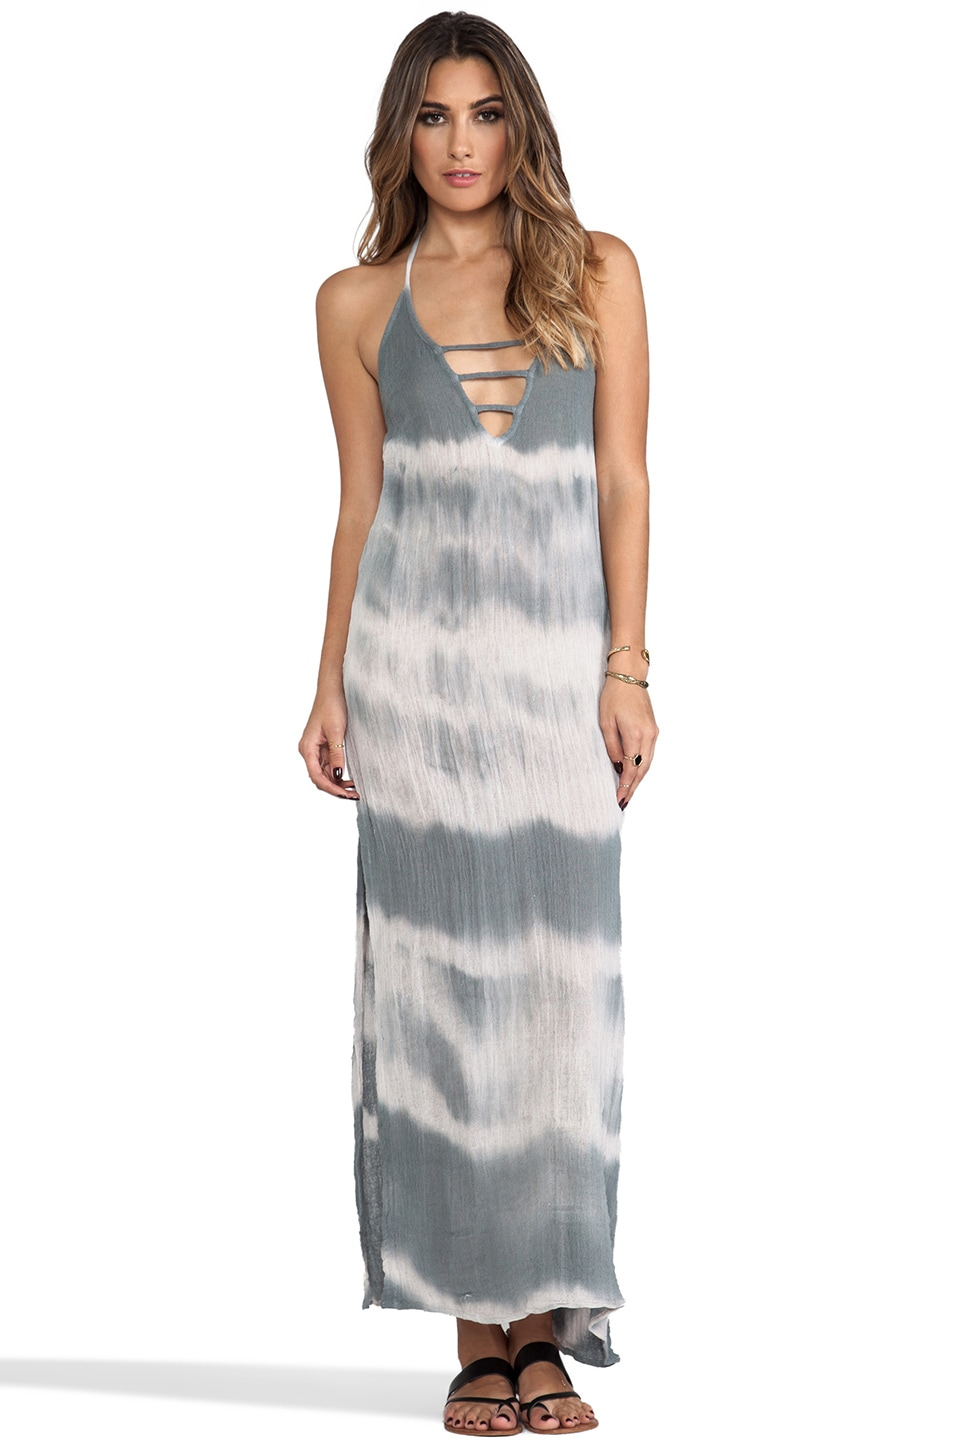 Jen's Pirate Booty Zumirez Long Tie Dye Dress in Storm Cloud